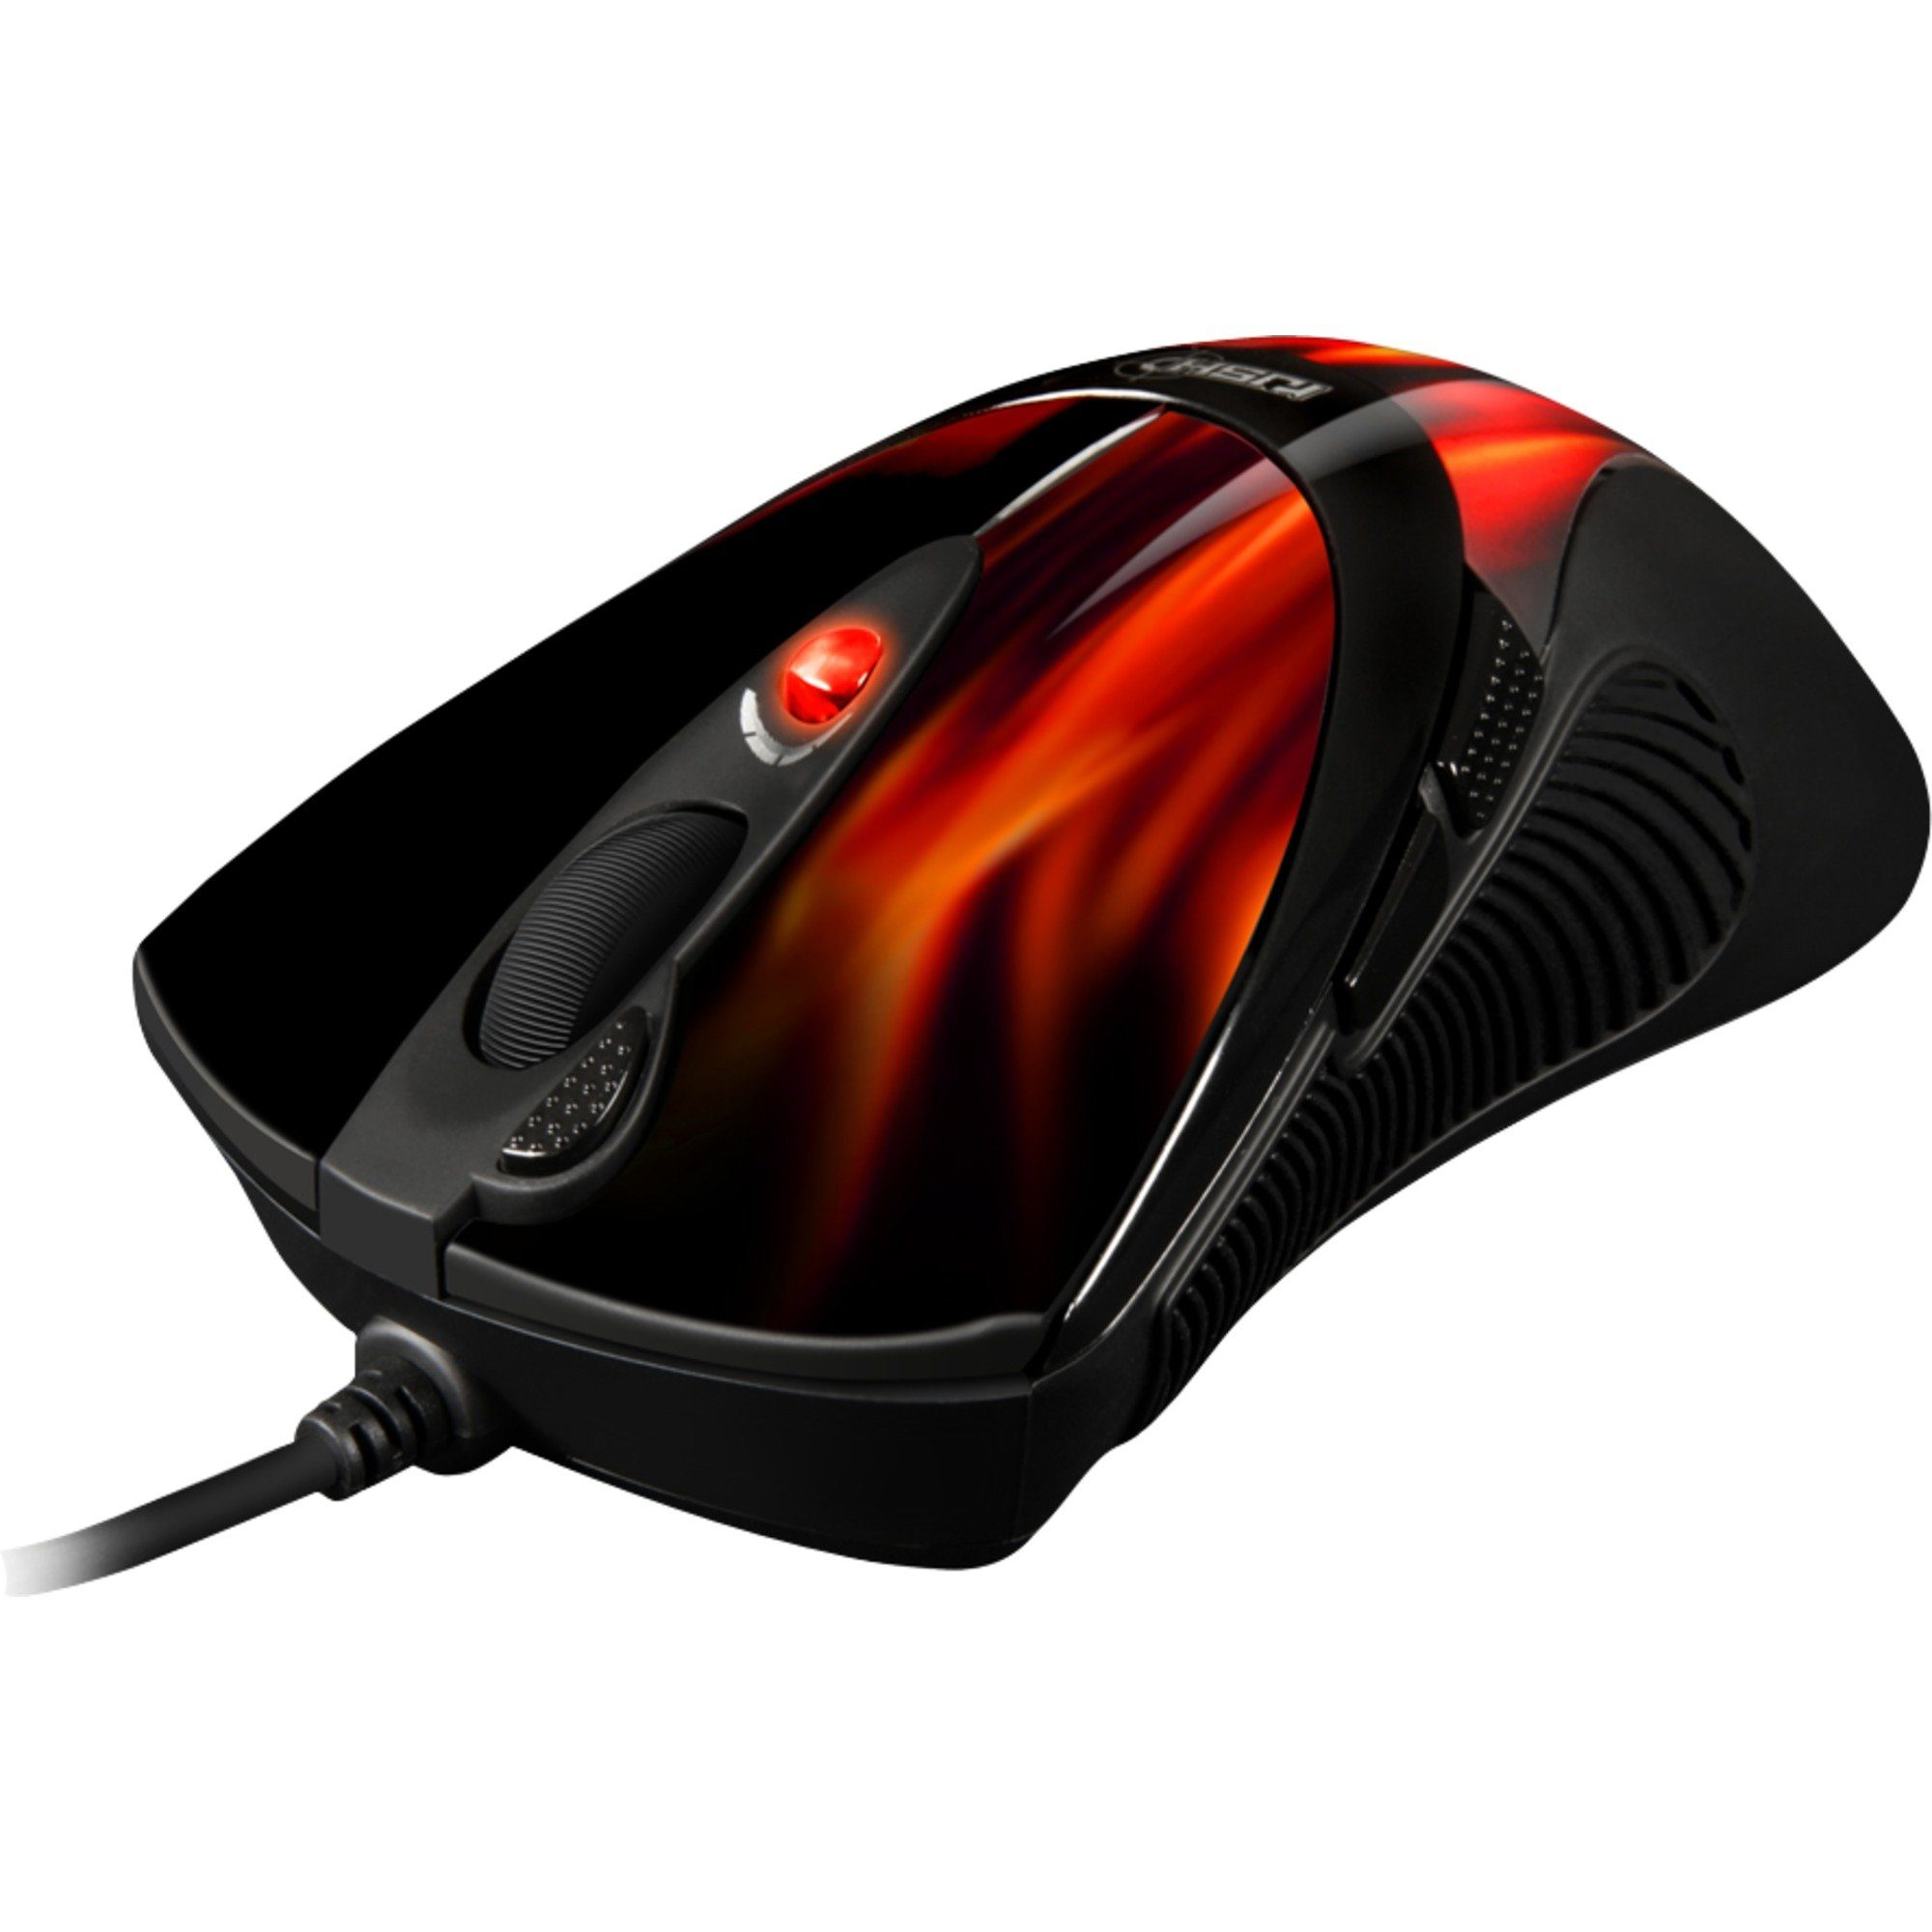 Sharkoon Maus »FireGlider Gaming Mouse«